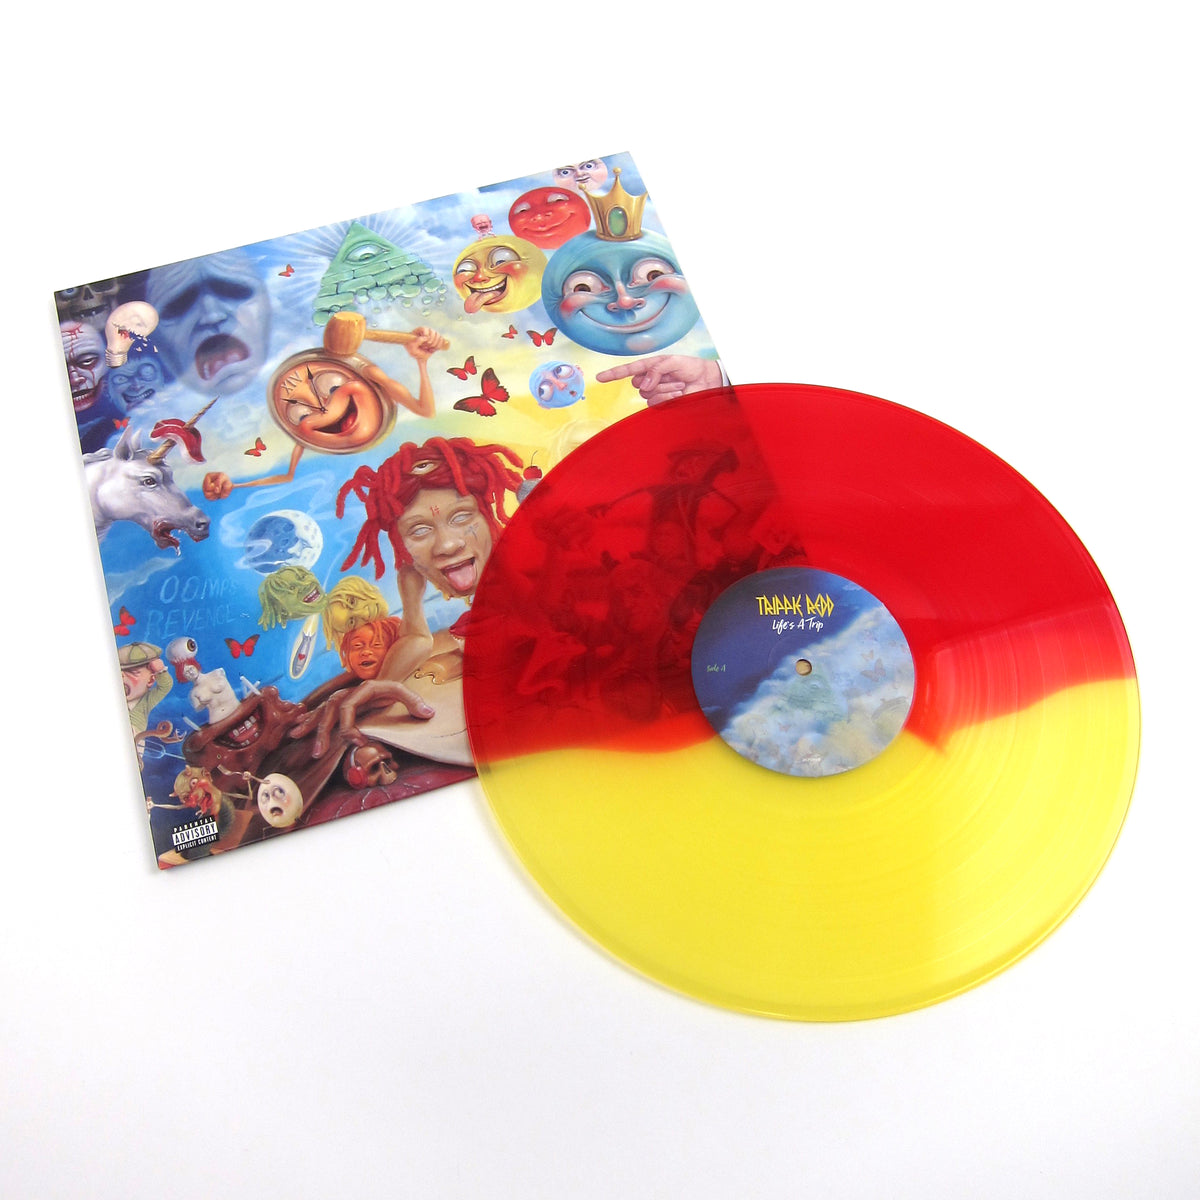 Trippie Redd: LIFE'S A TRIP (Colored Vinyl) Vinyl LP